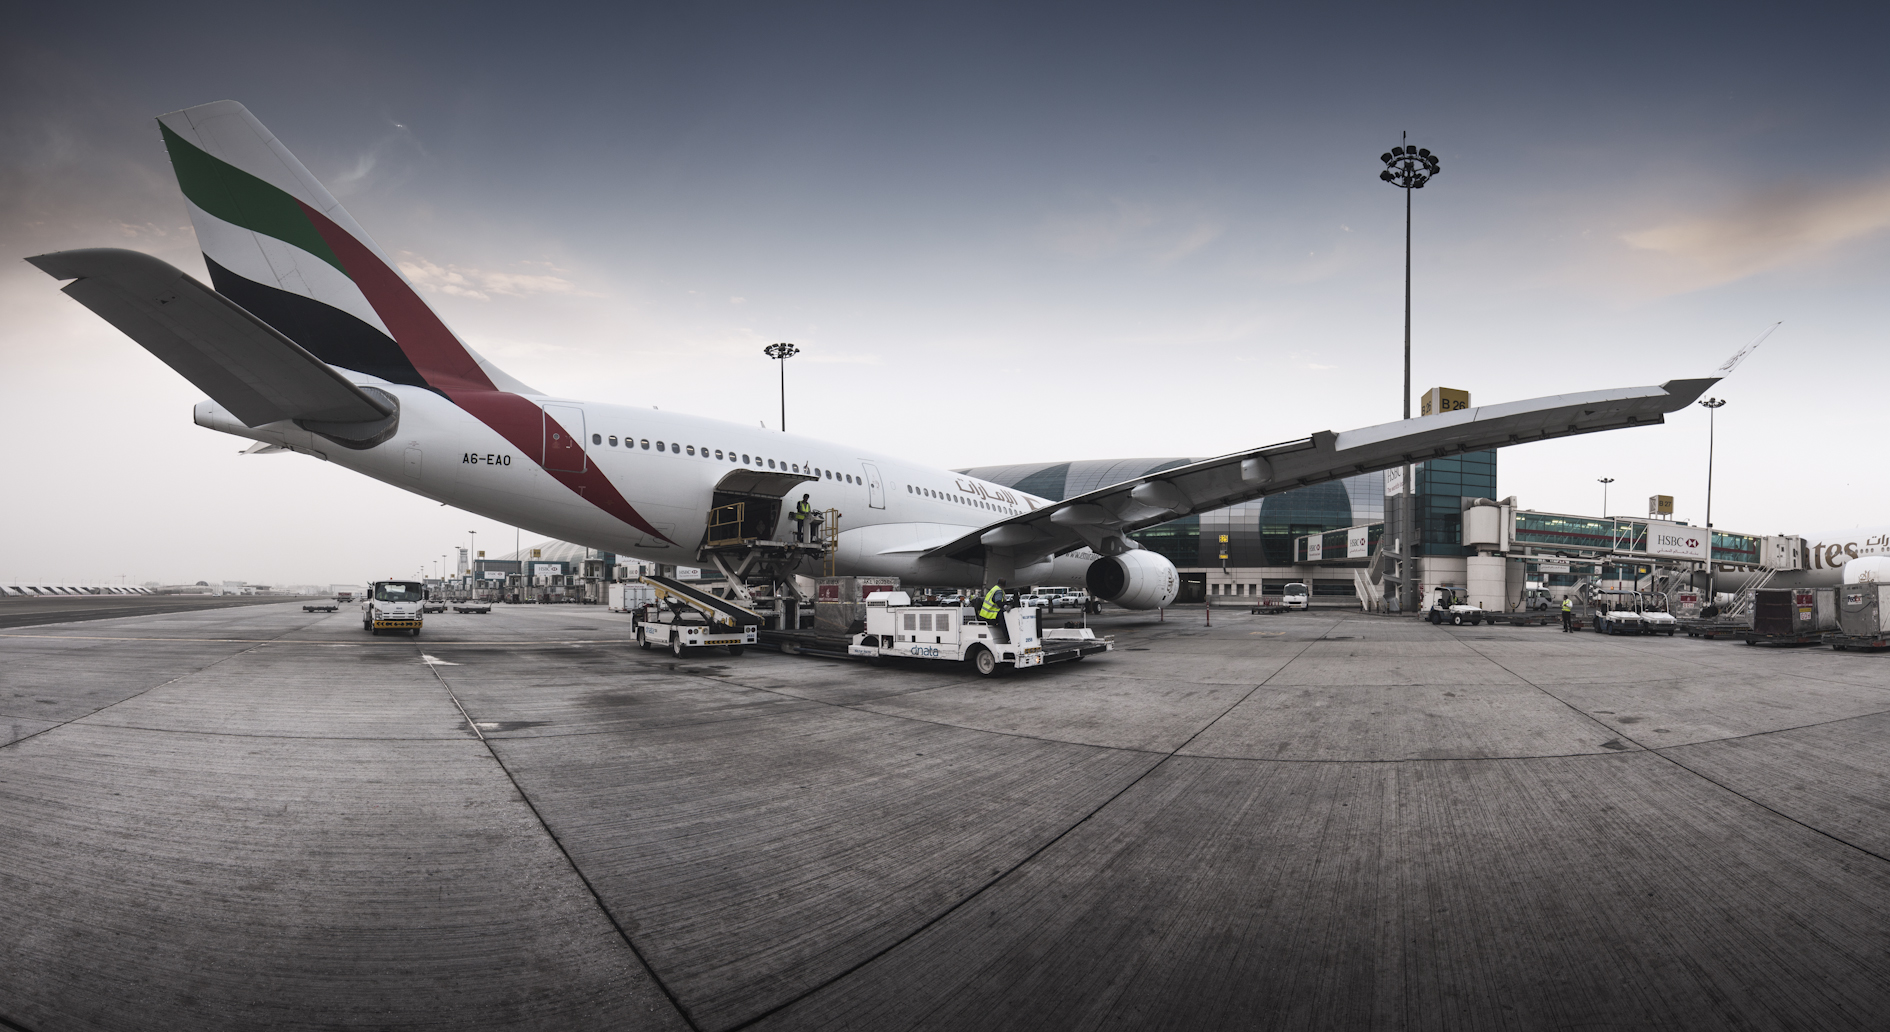 One of Emirates' A330 aircraft as seen at Dubai International Airport (Photo: Dubai Airports)